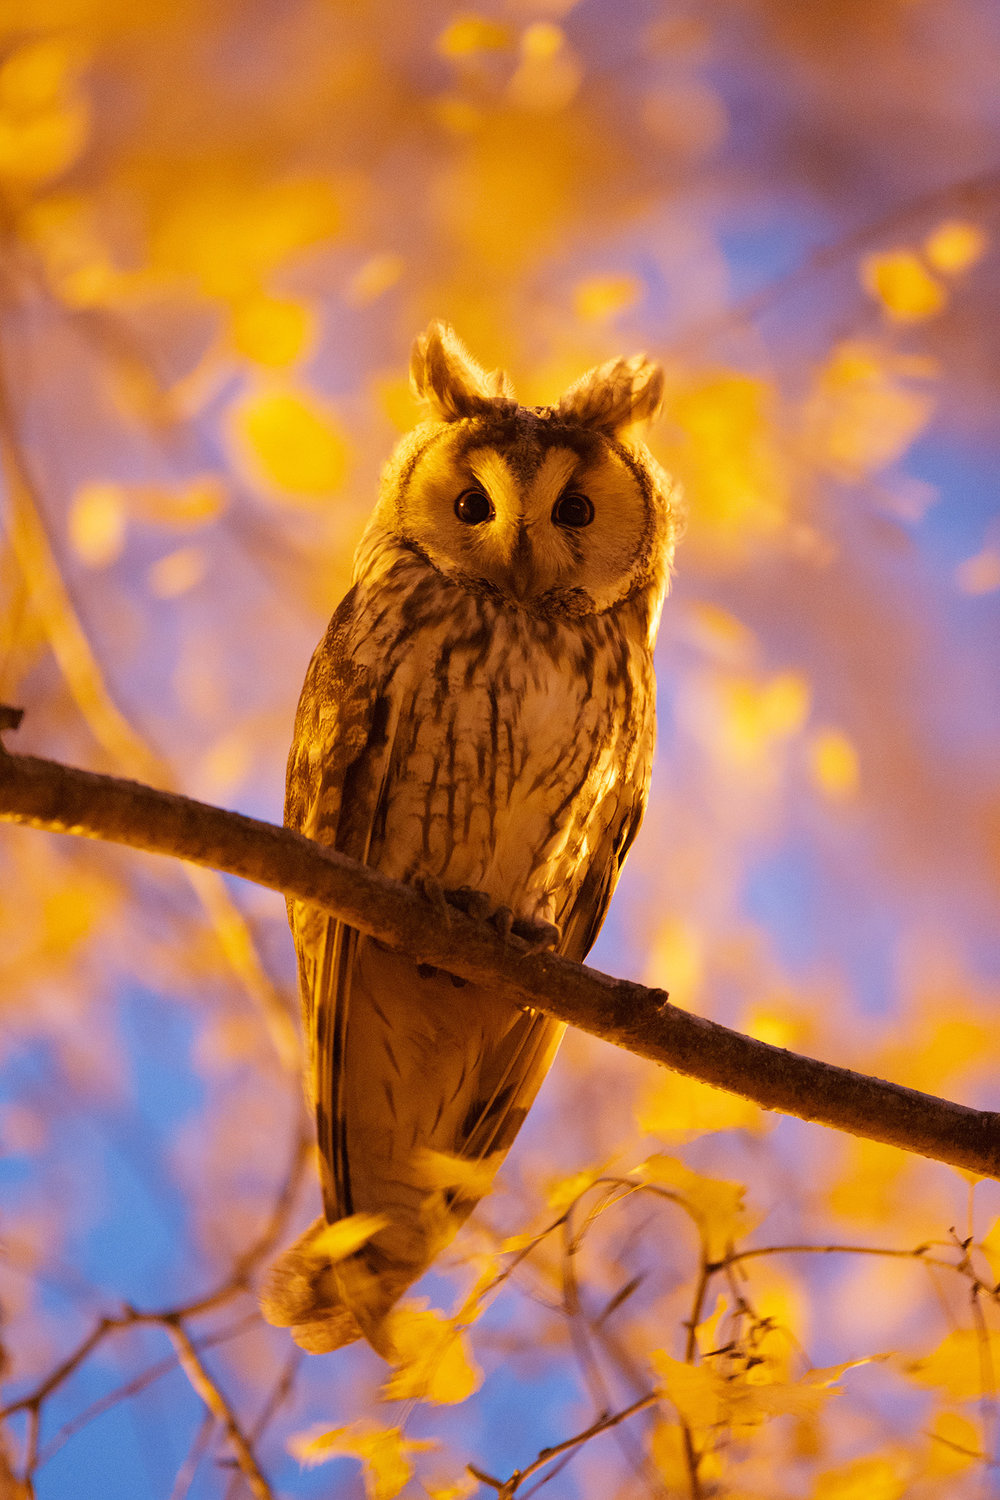 Long eared Owl at twilight, Kikinda, Serbia. 15th December 2017